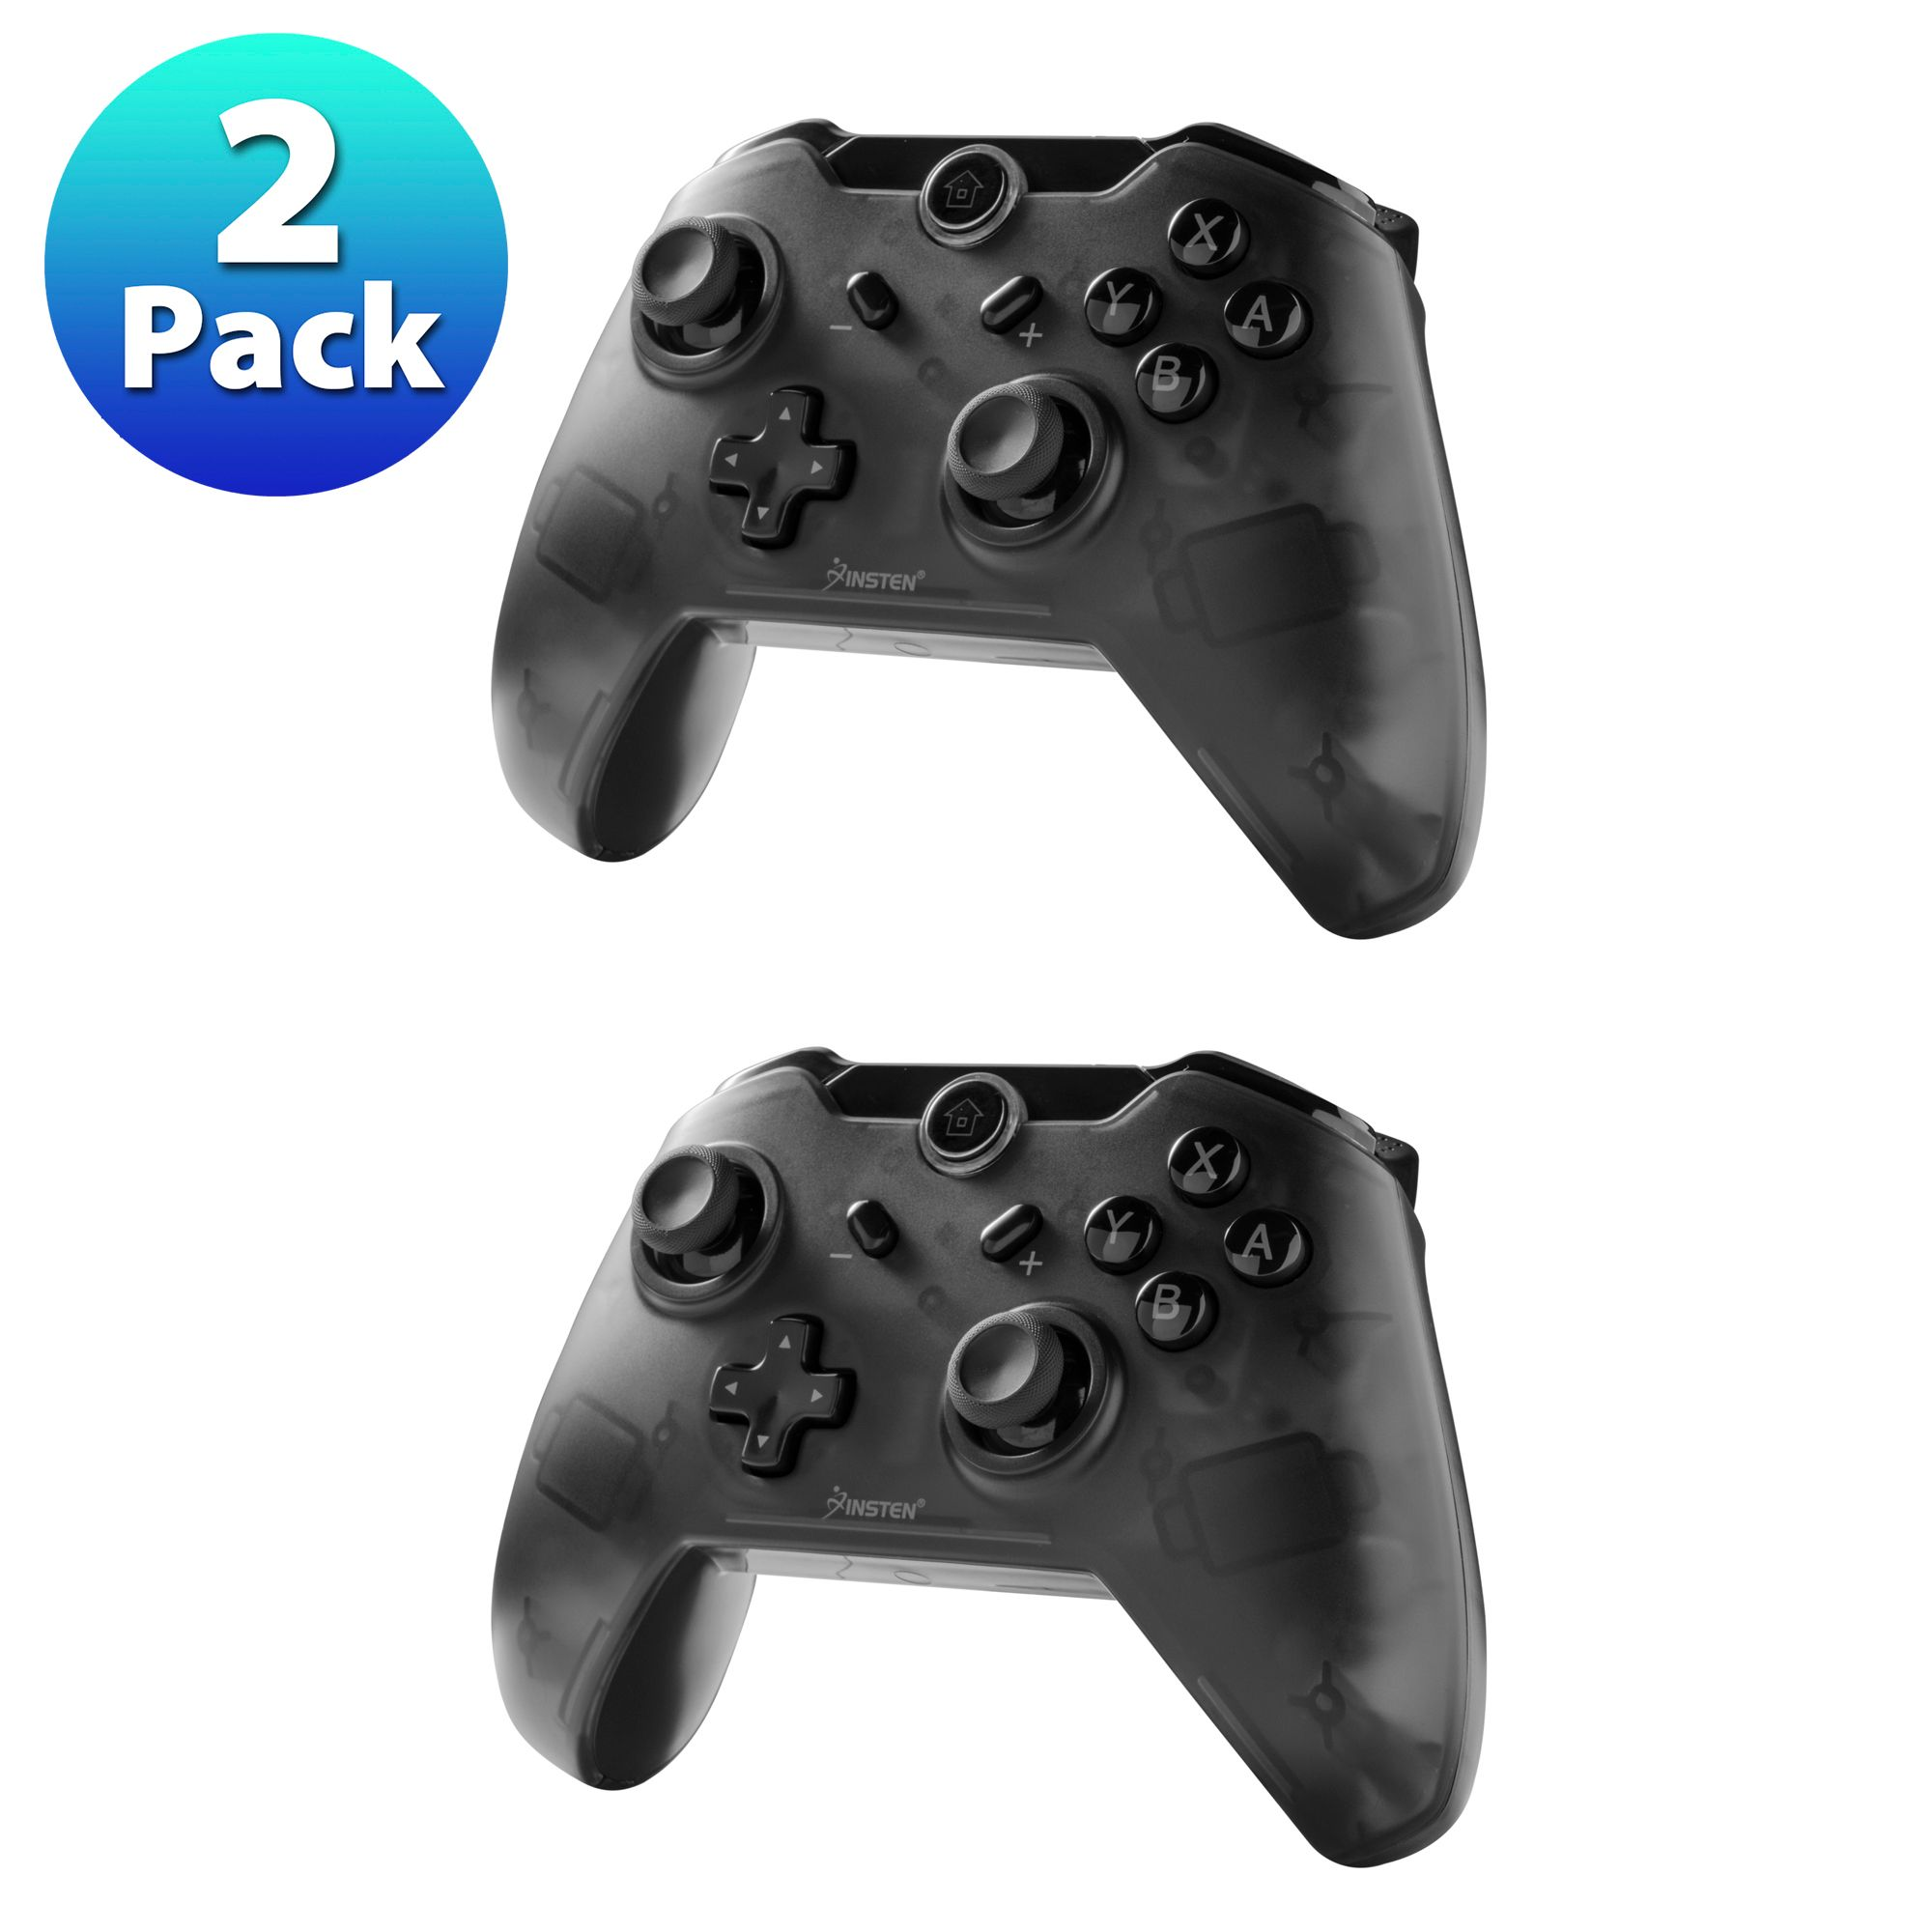 Insten 2-Pack Wireless Pro Controller For Nintendo Switch with Micro USB Charge Cable - Smoke Black